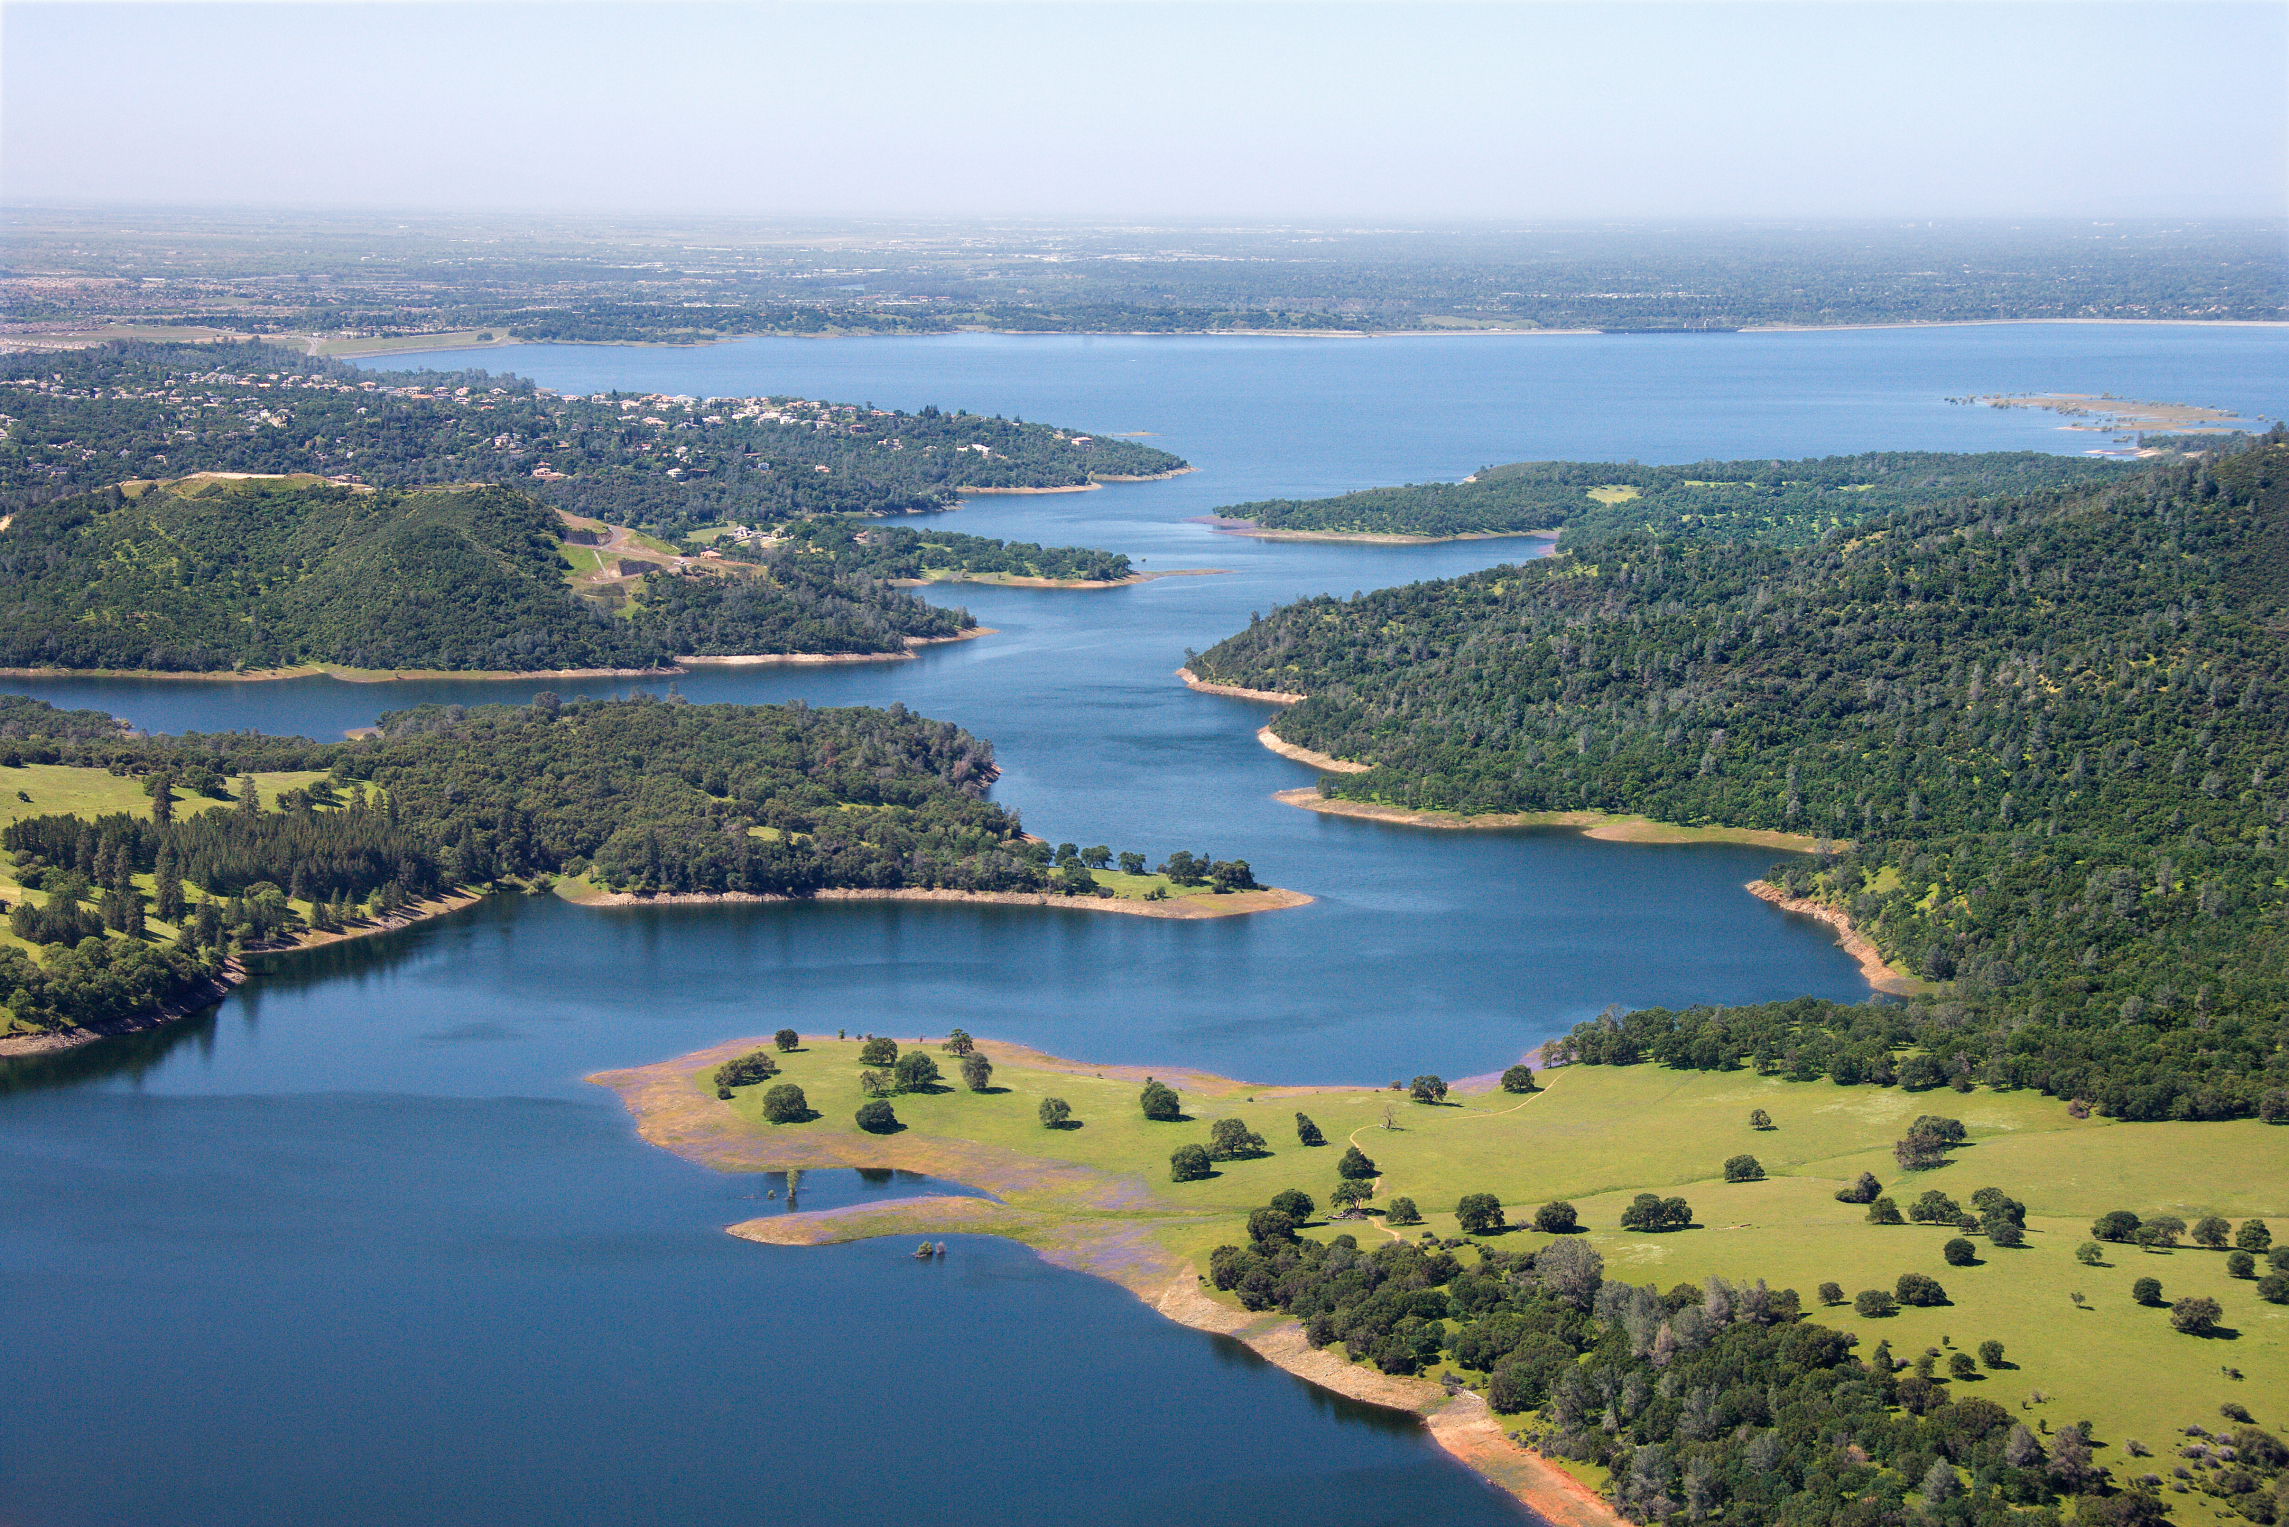 Beaches In Folsom Lake California Usa Today